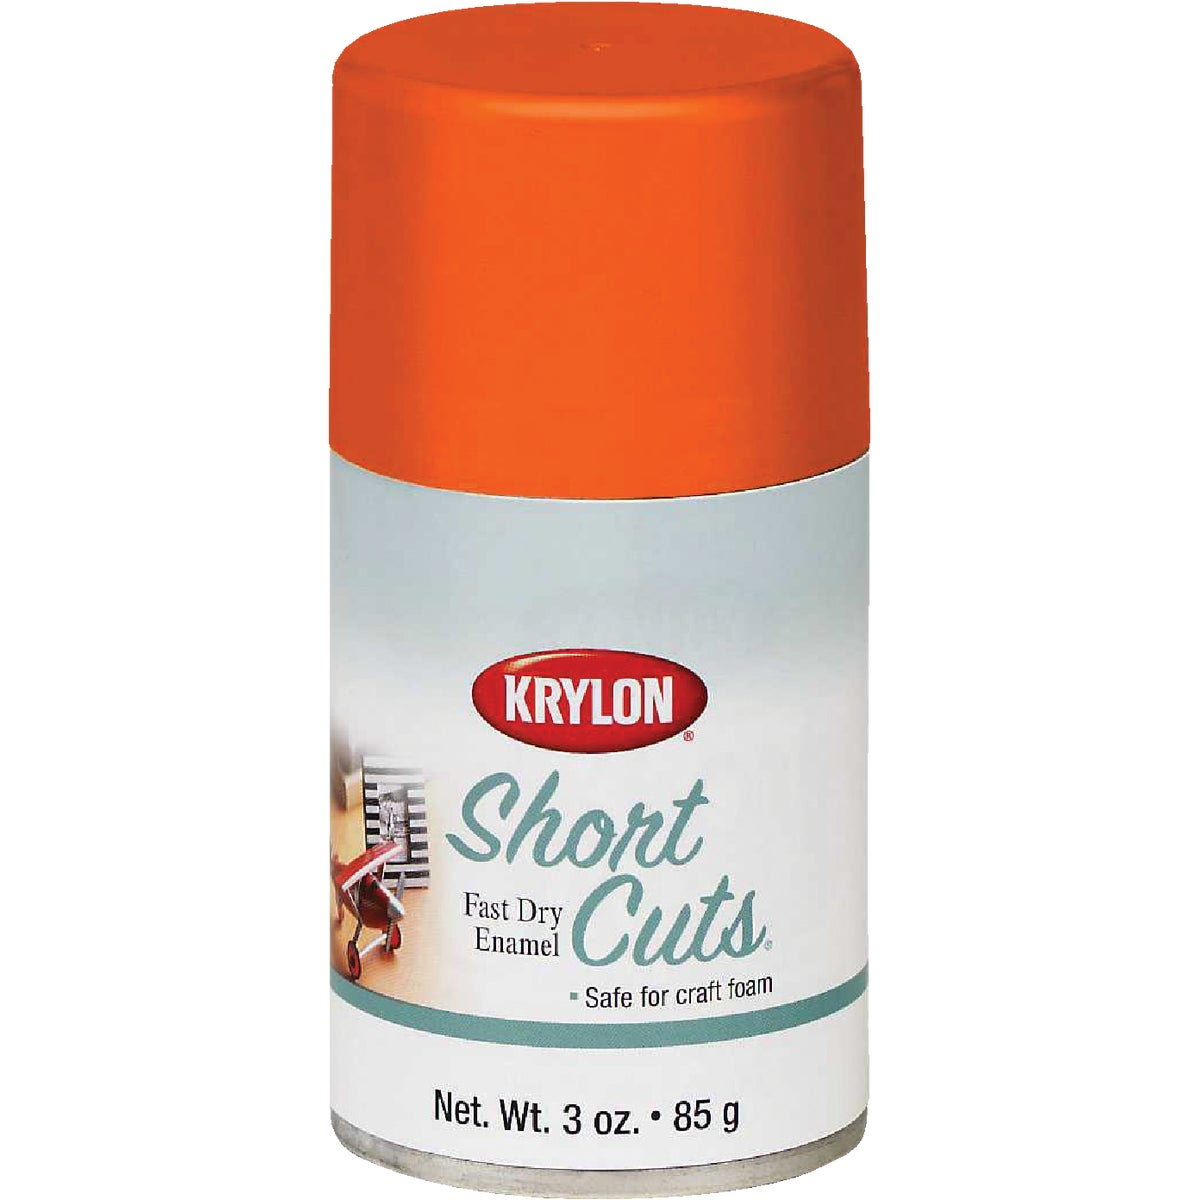 ORANGE GLOW SPRAY ENAMEL - SCS-050 by Krylon/consumer Div